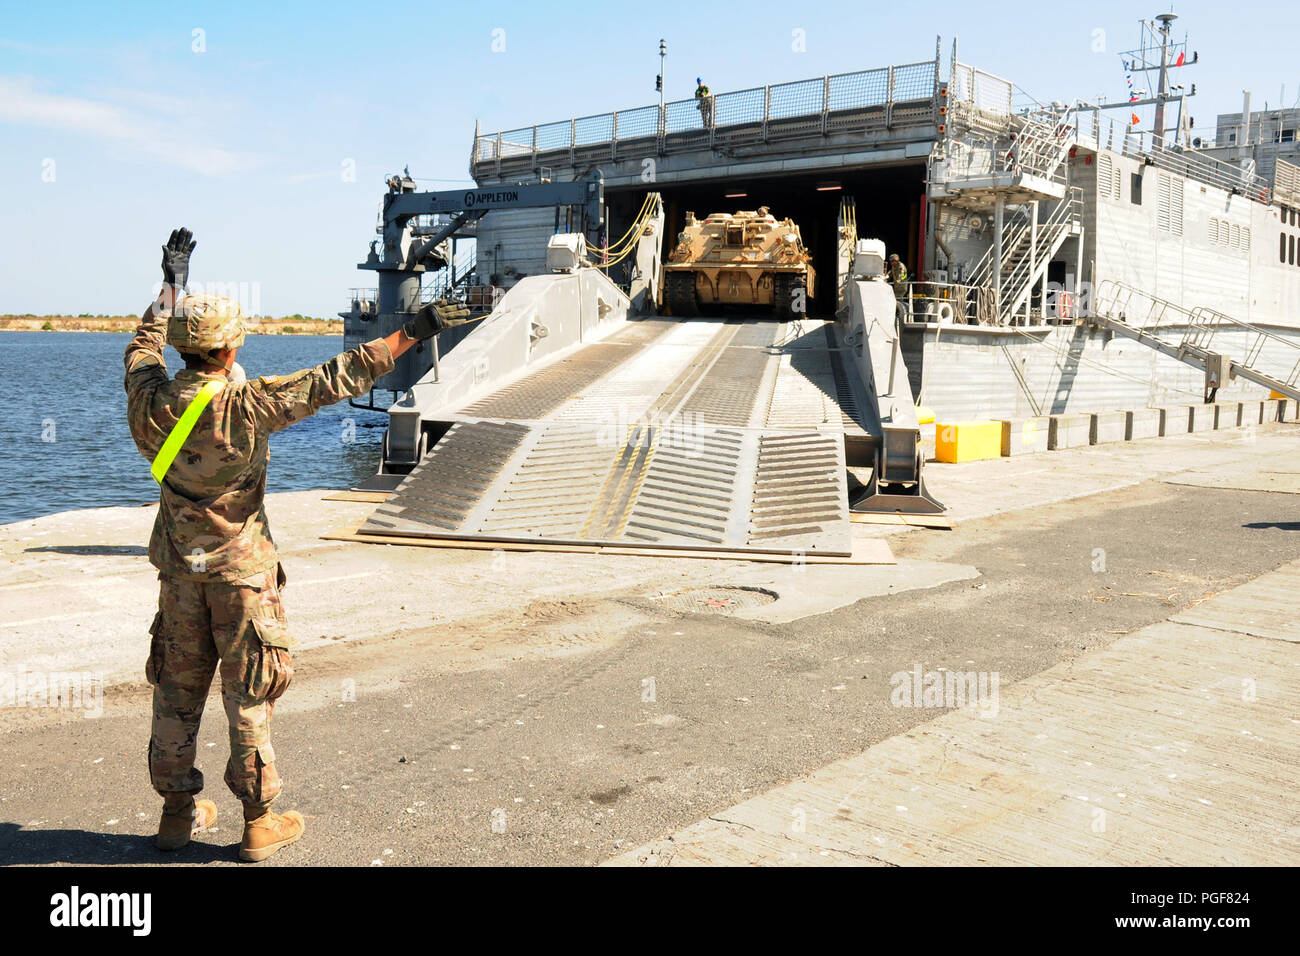 Soldiers assigned to Bravo Company Team, 2nd Battalion, 5th Cavalry Regiment, 1st Armored Brigade Combat Team, 1st Cavalry Division offload an M88A2 Hercules armored recovery vehicle from the United States Naval Ship Carson City, an expeditionary fast transport, at the Port of Constanta, Romania, Aug. 20, 2018. The Soldiers are redeploying after Noble Partner 2018, a Georgian Armed Forces and U.S. Army Europe cooperatively-led event improving readiness and interoperability of Georgia, U.S. and participating nations. Stock Photo